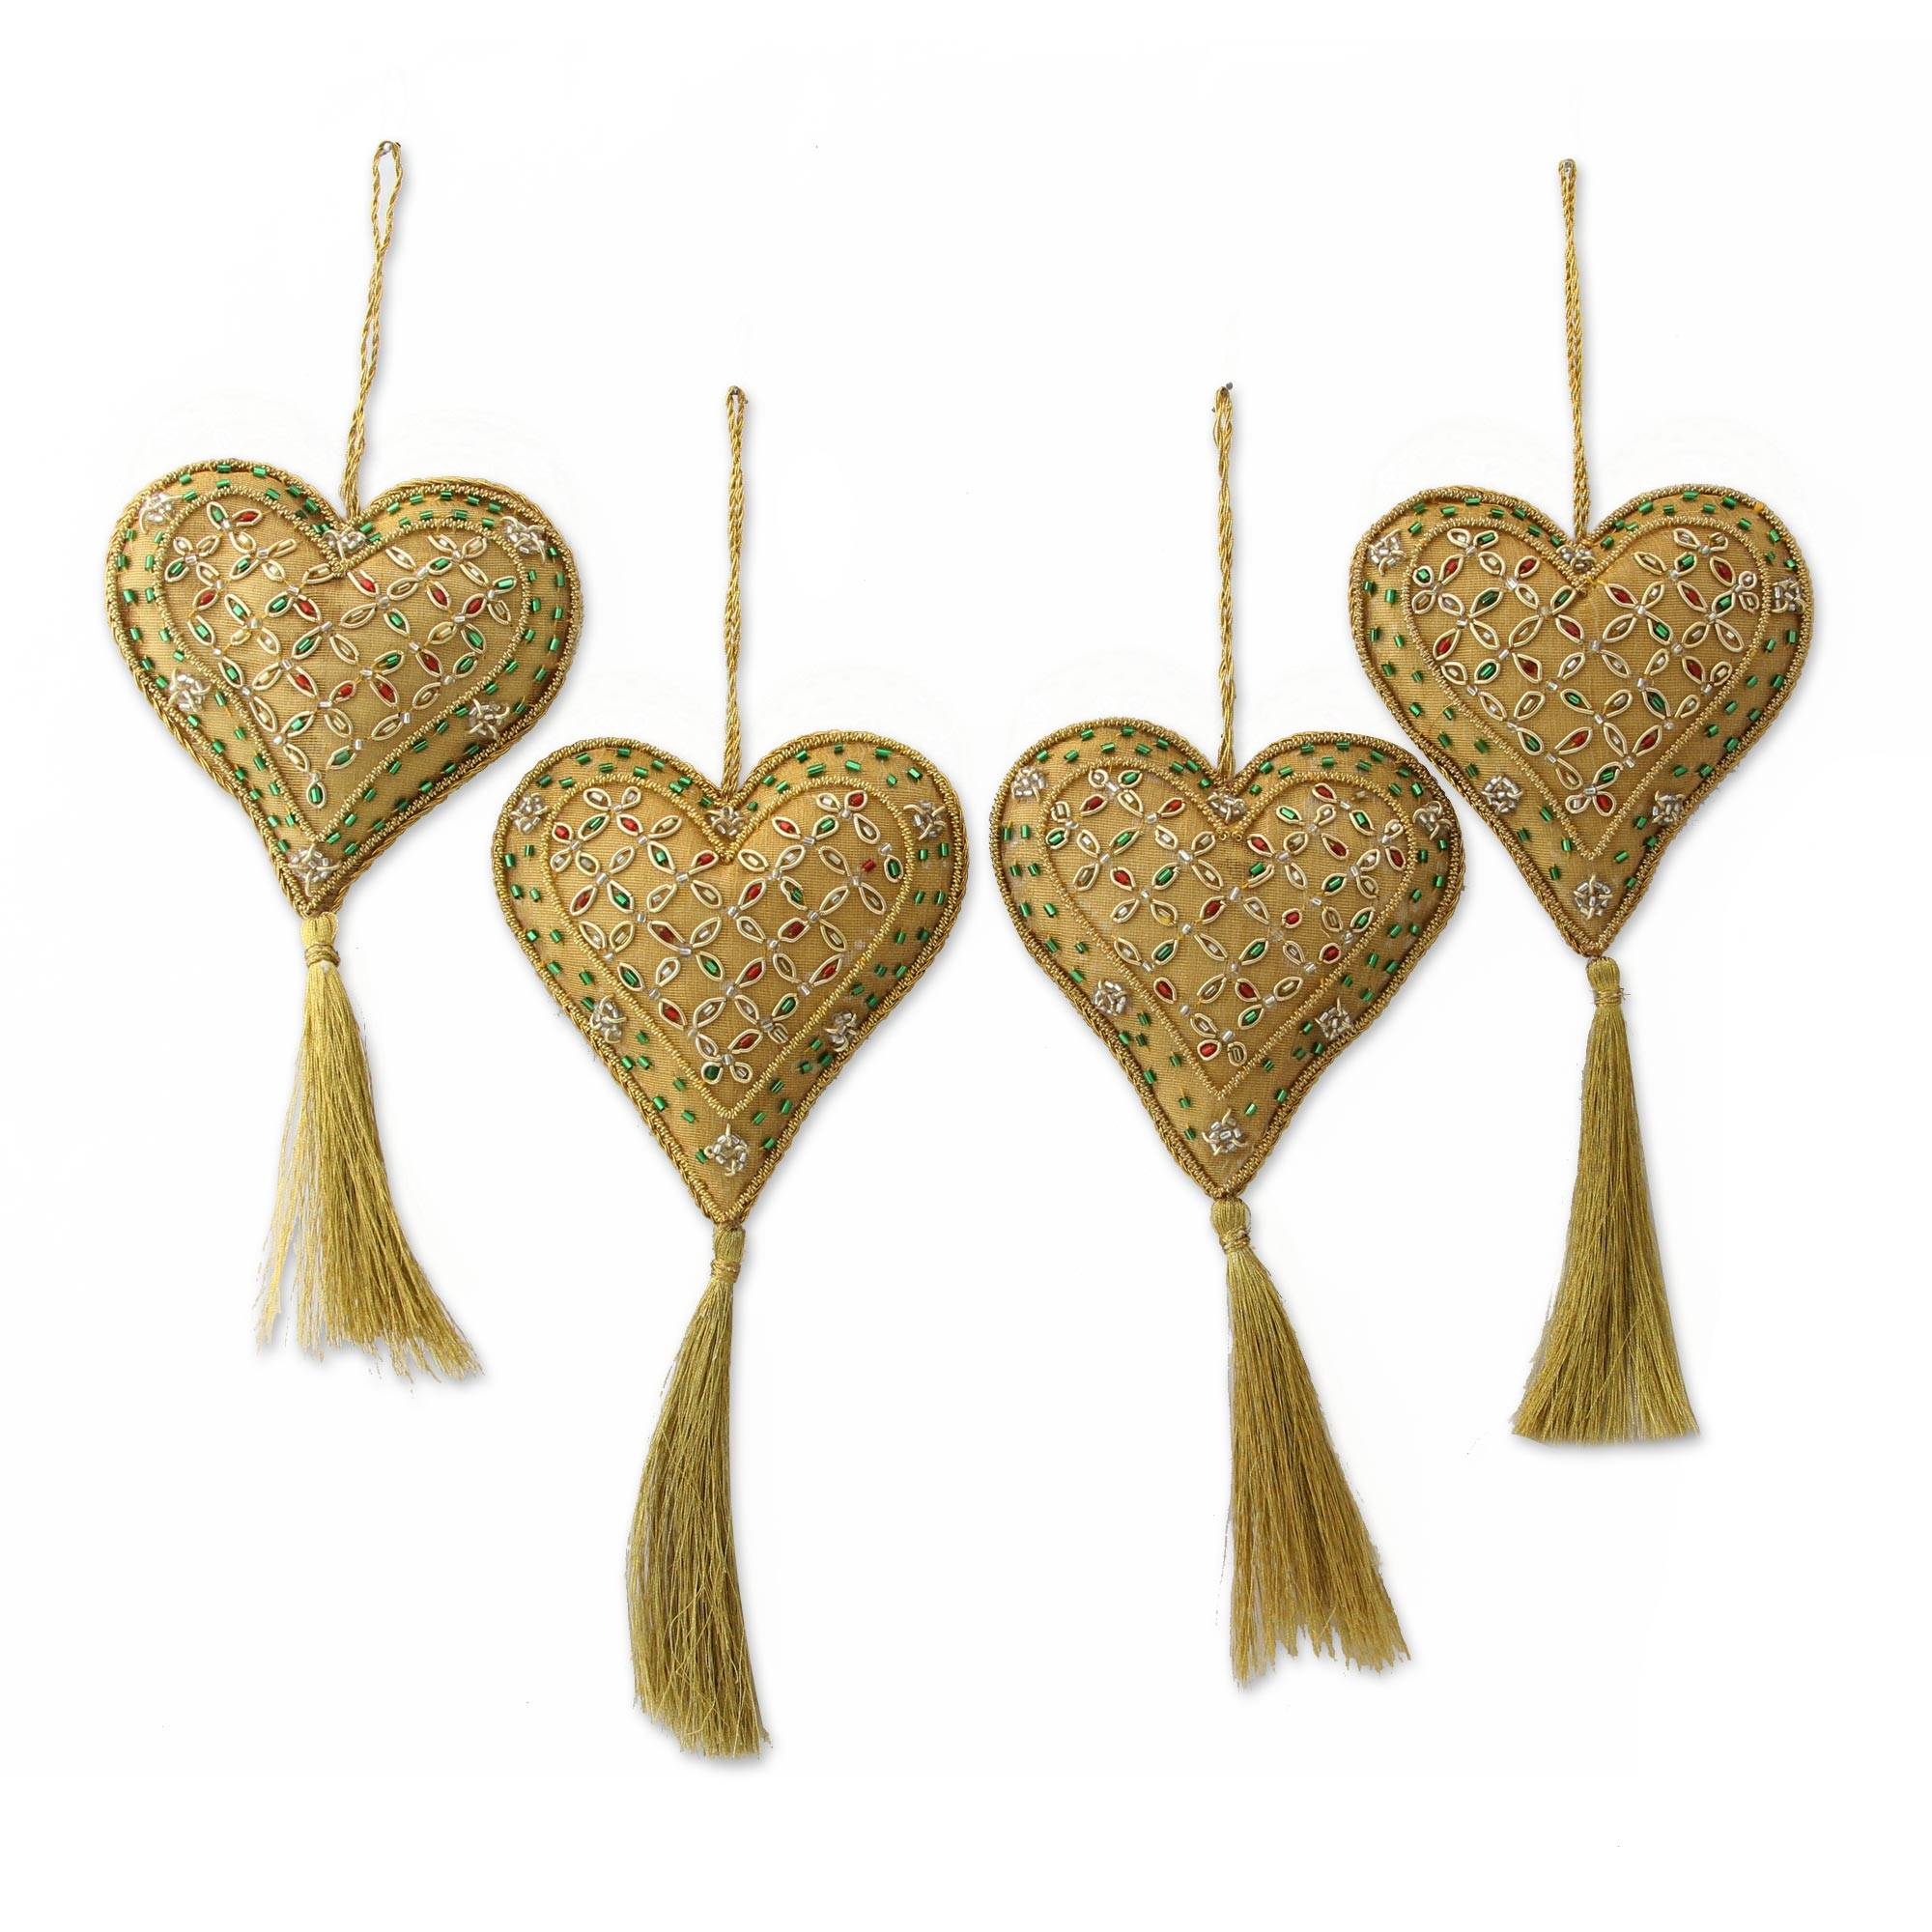 Peruvian christmas ornaments - Four Handcrafted Beaded Gold Heart Christmas Ornaments Heart Of The Holiday Novica